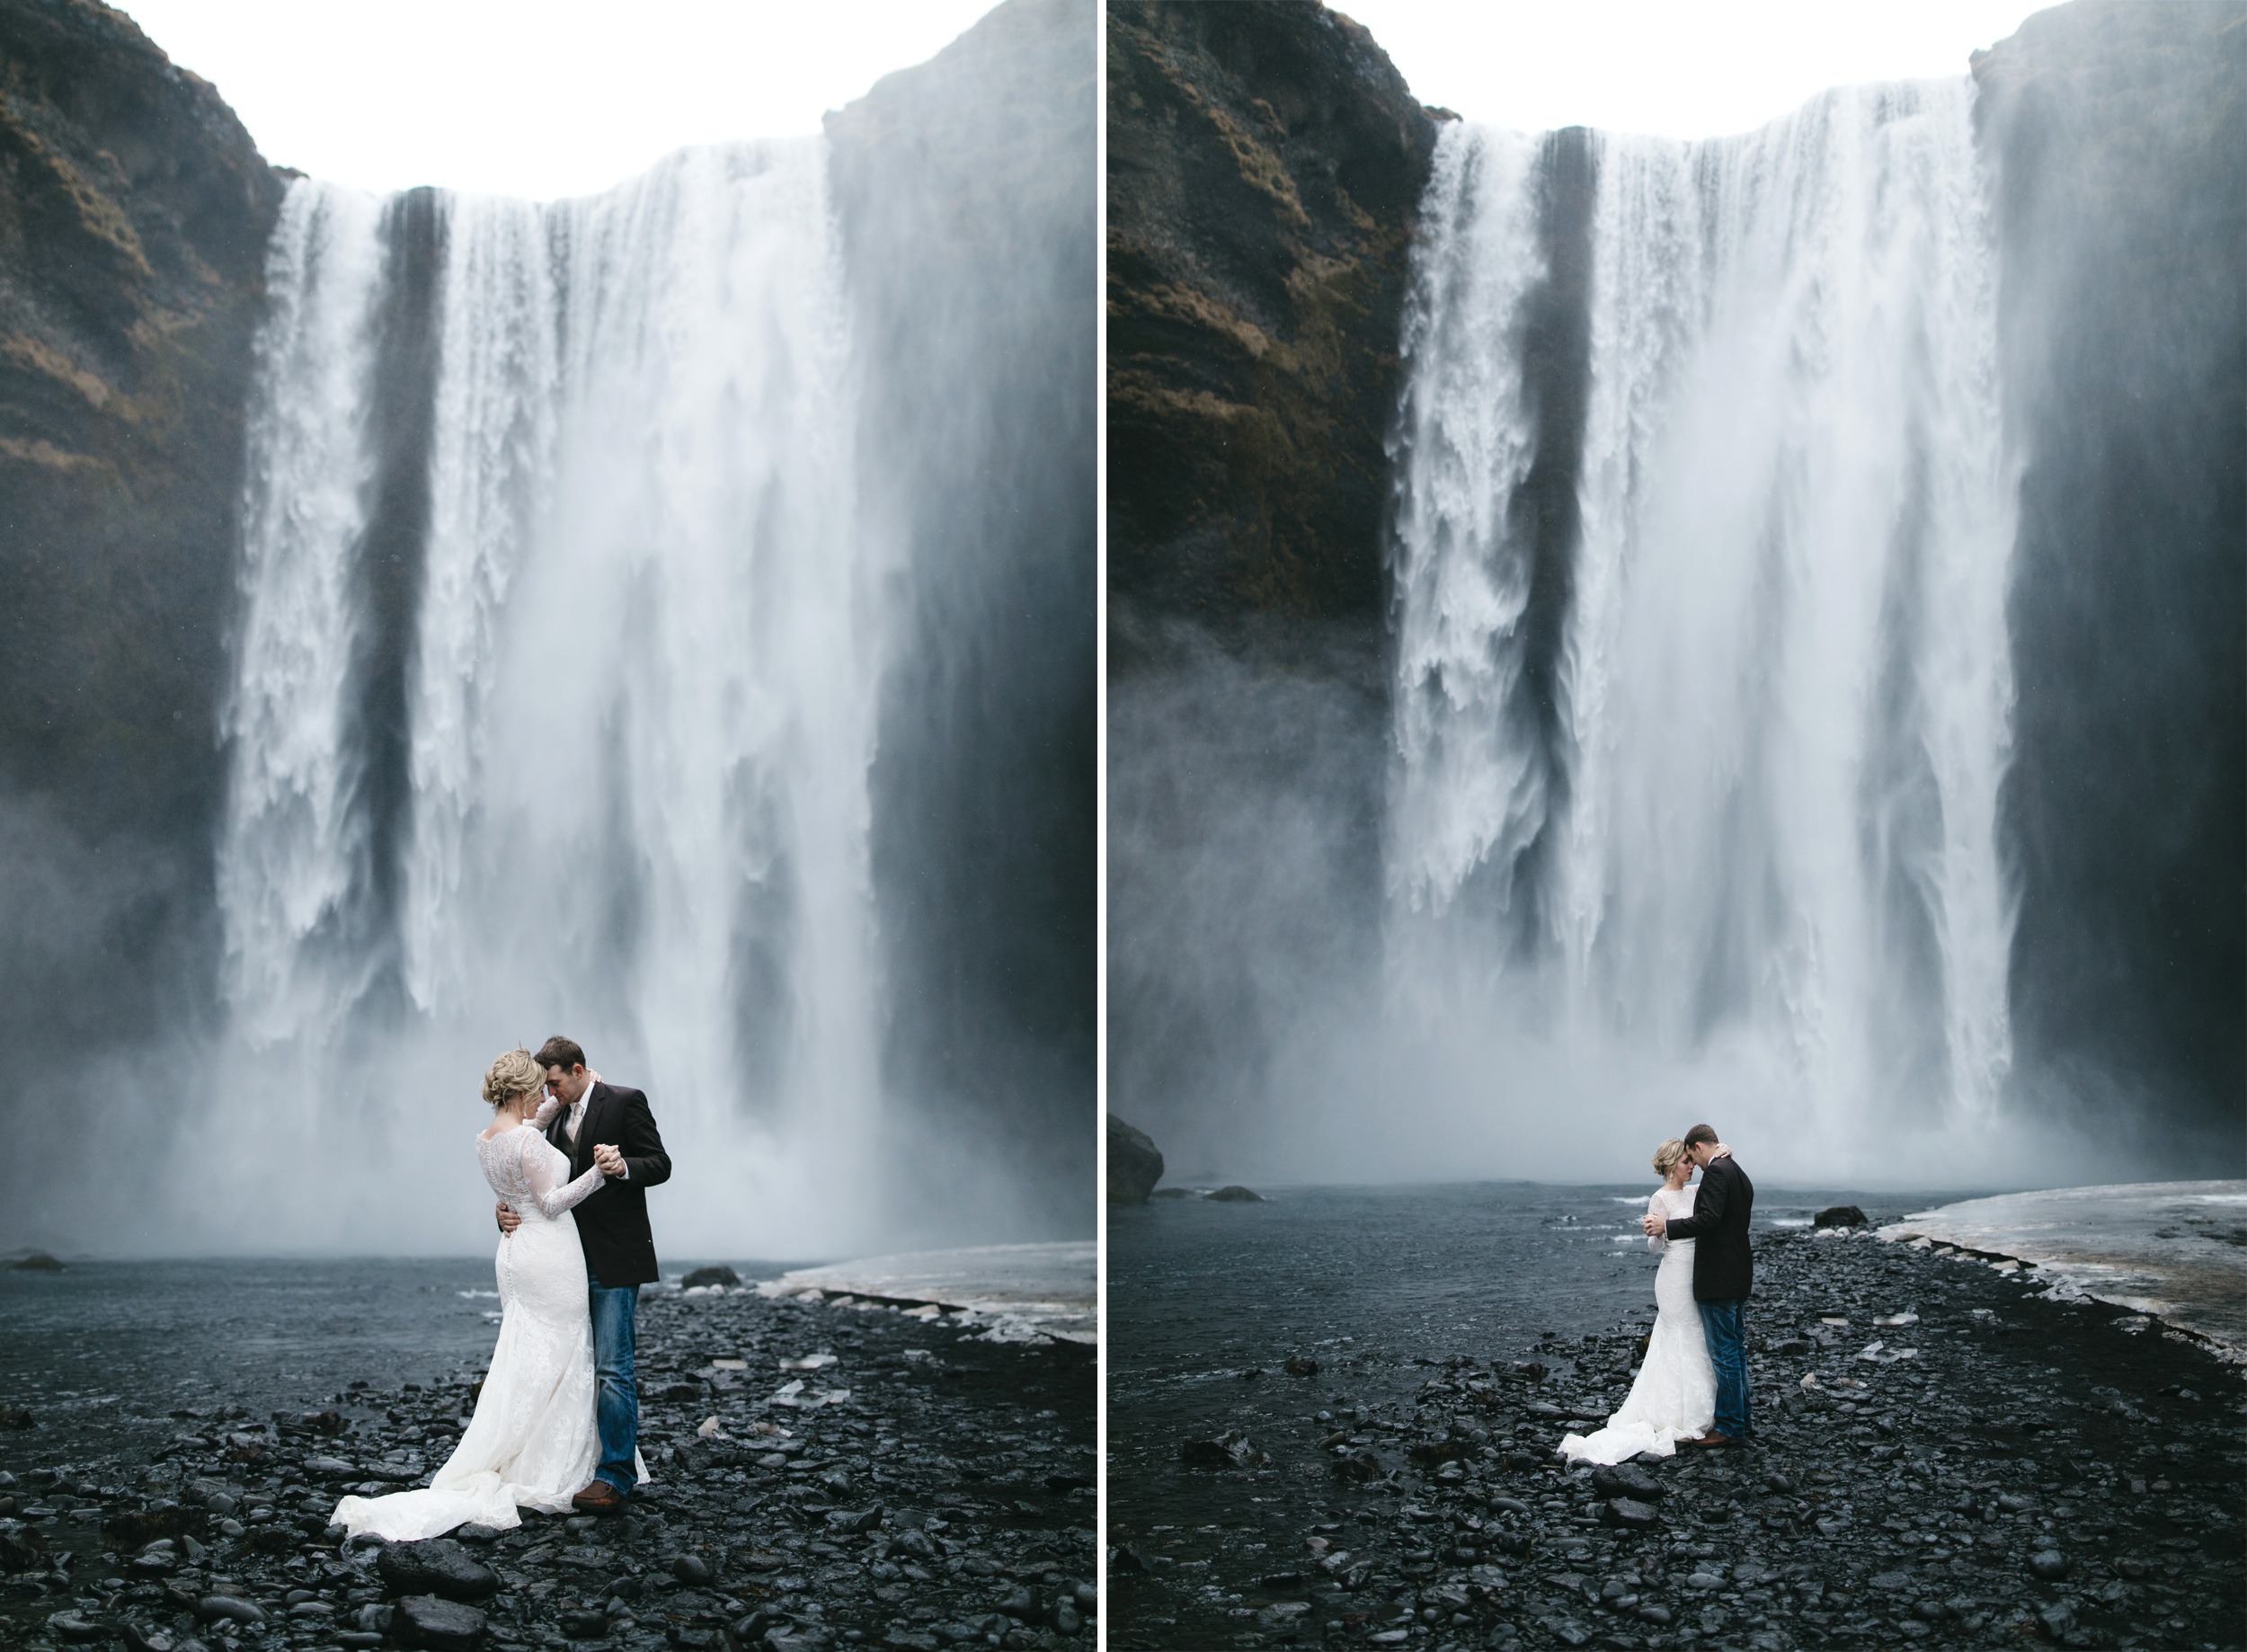 A bride and groom share their first dance in front of Skogafoss waterfall with Iceland Adventure Elopement Photographers Colby and Jess, colbyandjess.com